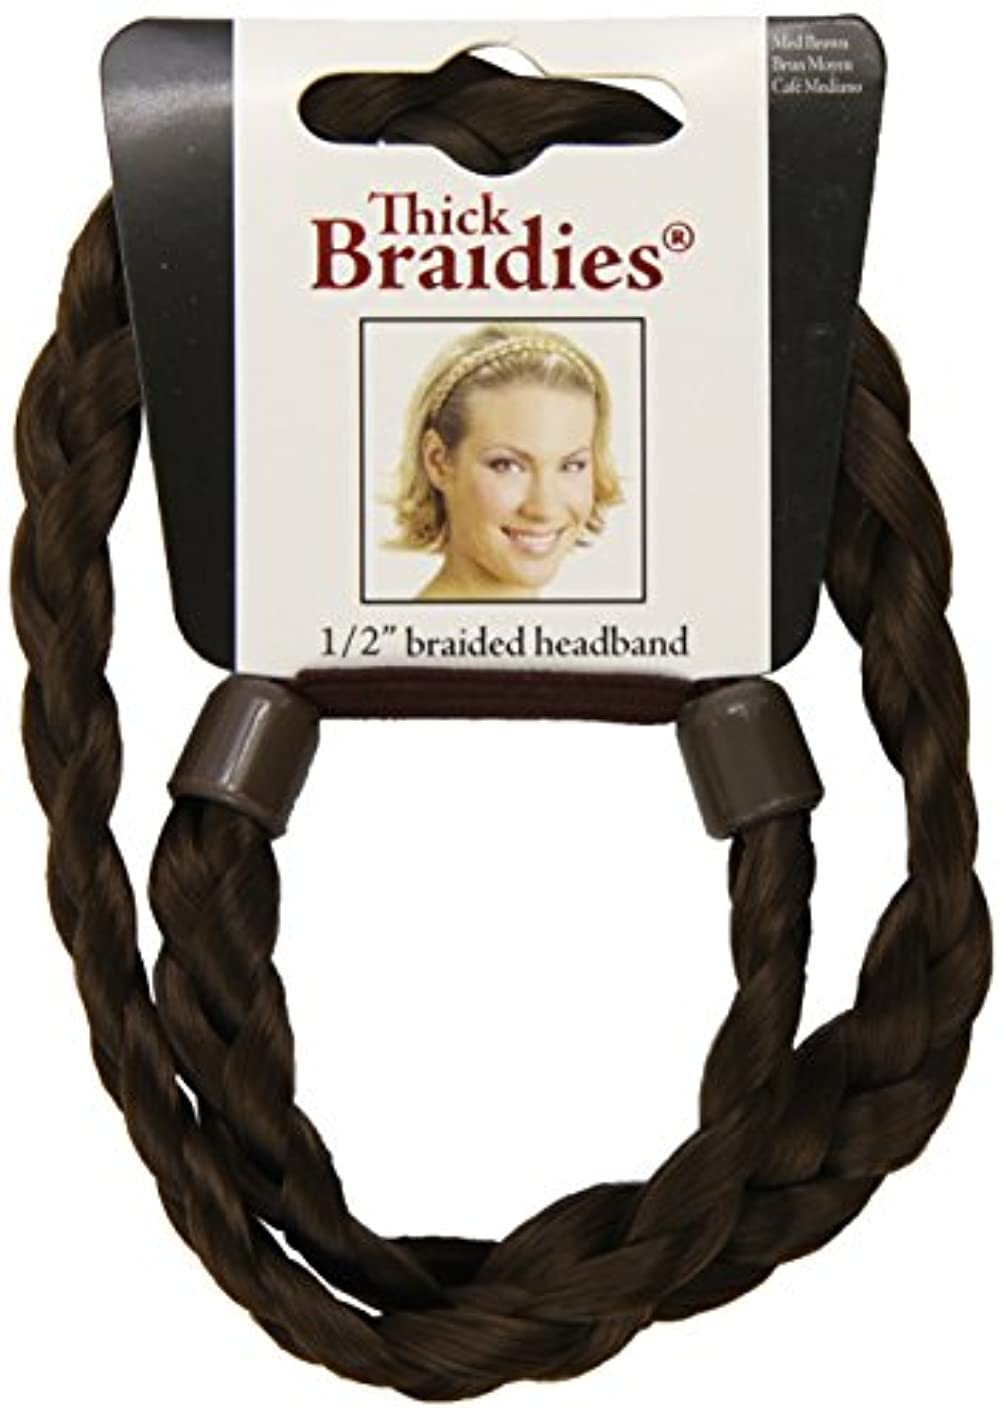 Mia Beauty Thick Braidie Head Band, Medium Brown, 0.05 Ounce opwgufxxgcp523